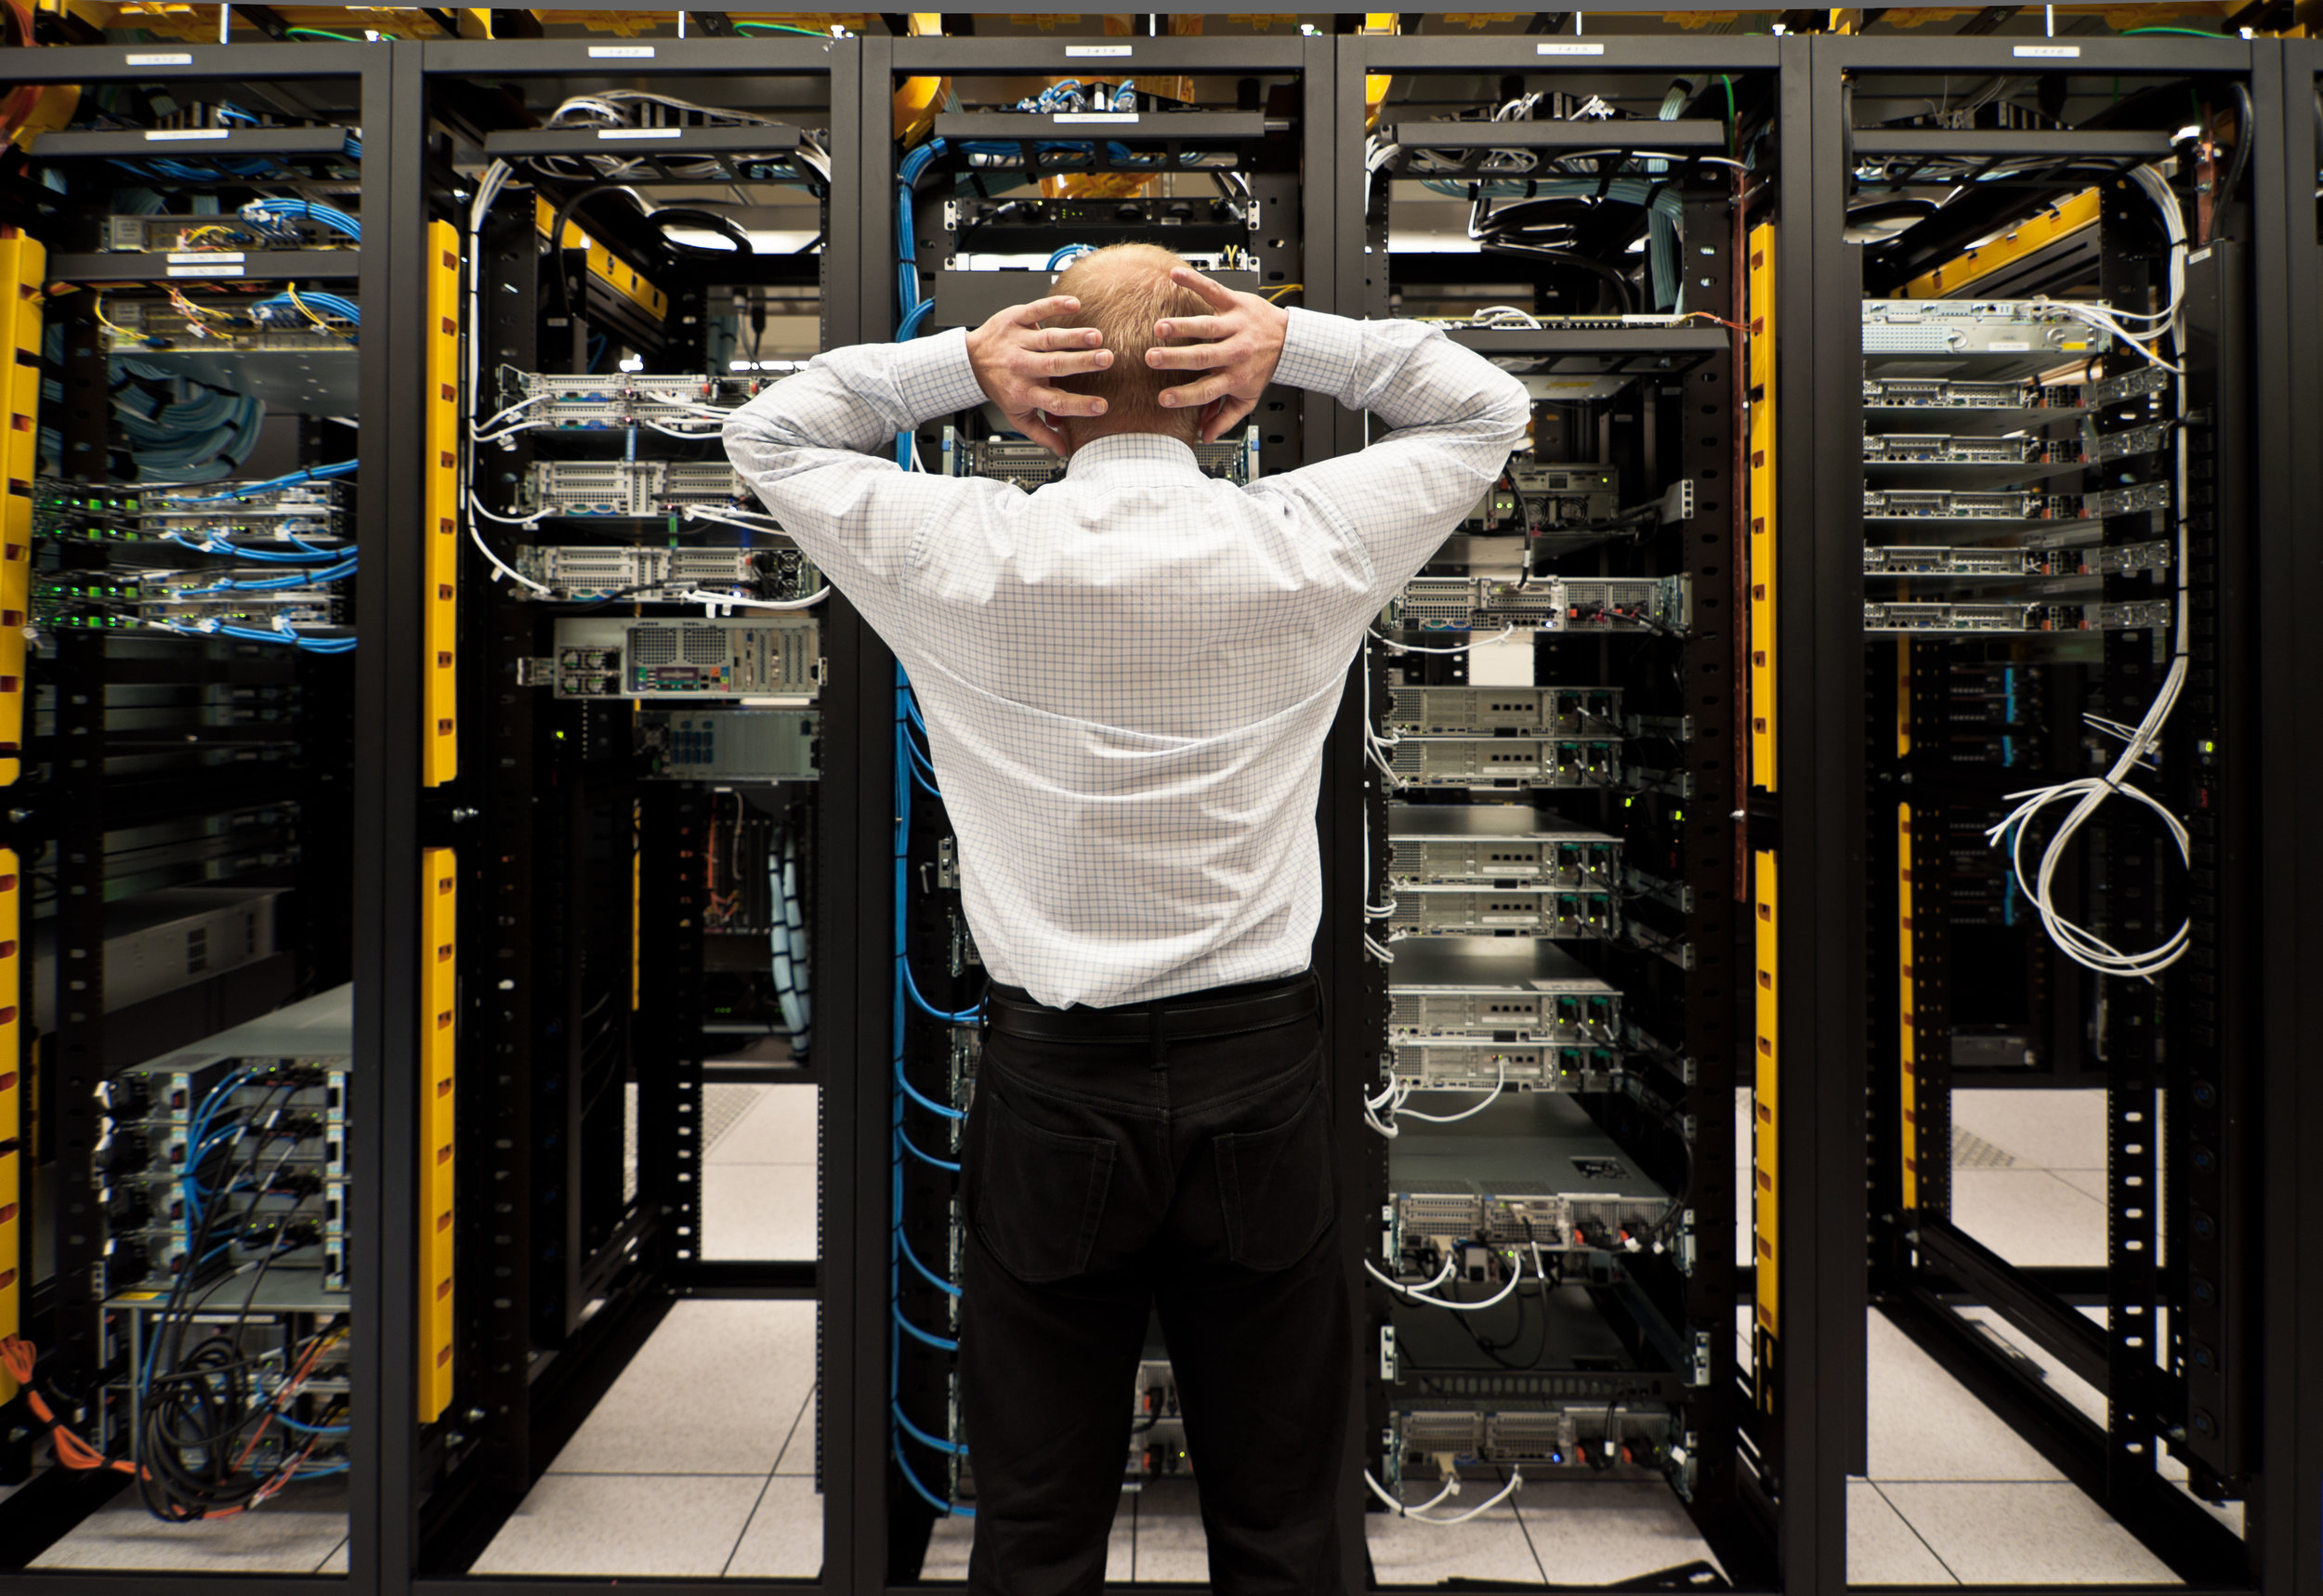 continuing data center maintenance - *Four percent of the average IT budget goes to maintenance with most predictable cost structures and OPEX. The cost of a preventative maintenance program is a fraction of your IT budget and the cost of physical equipment.*